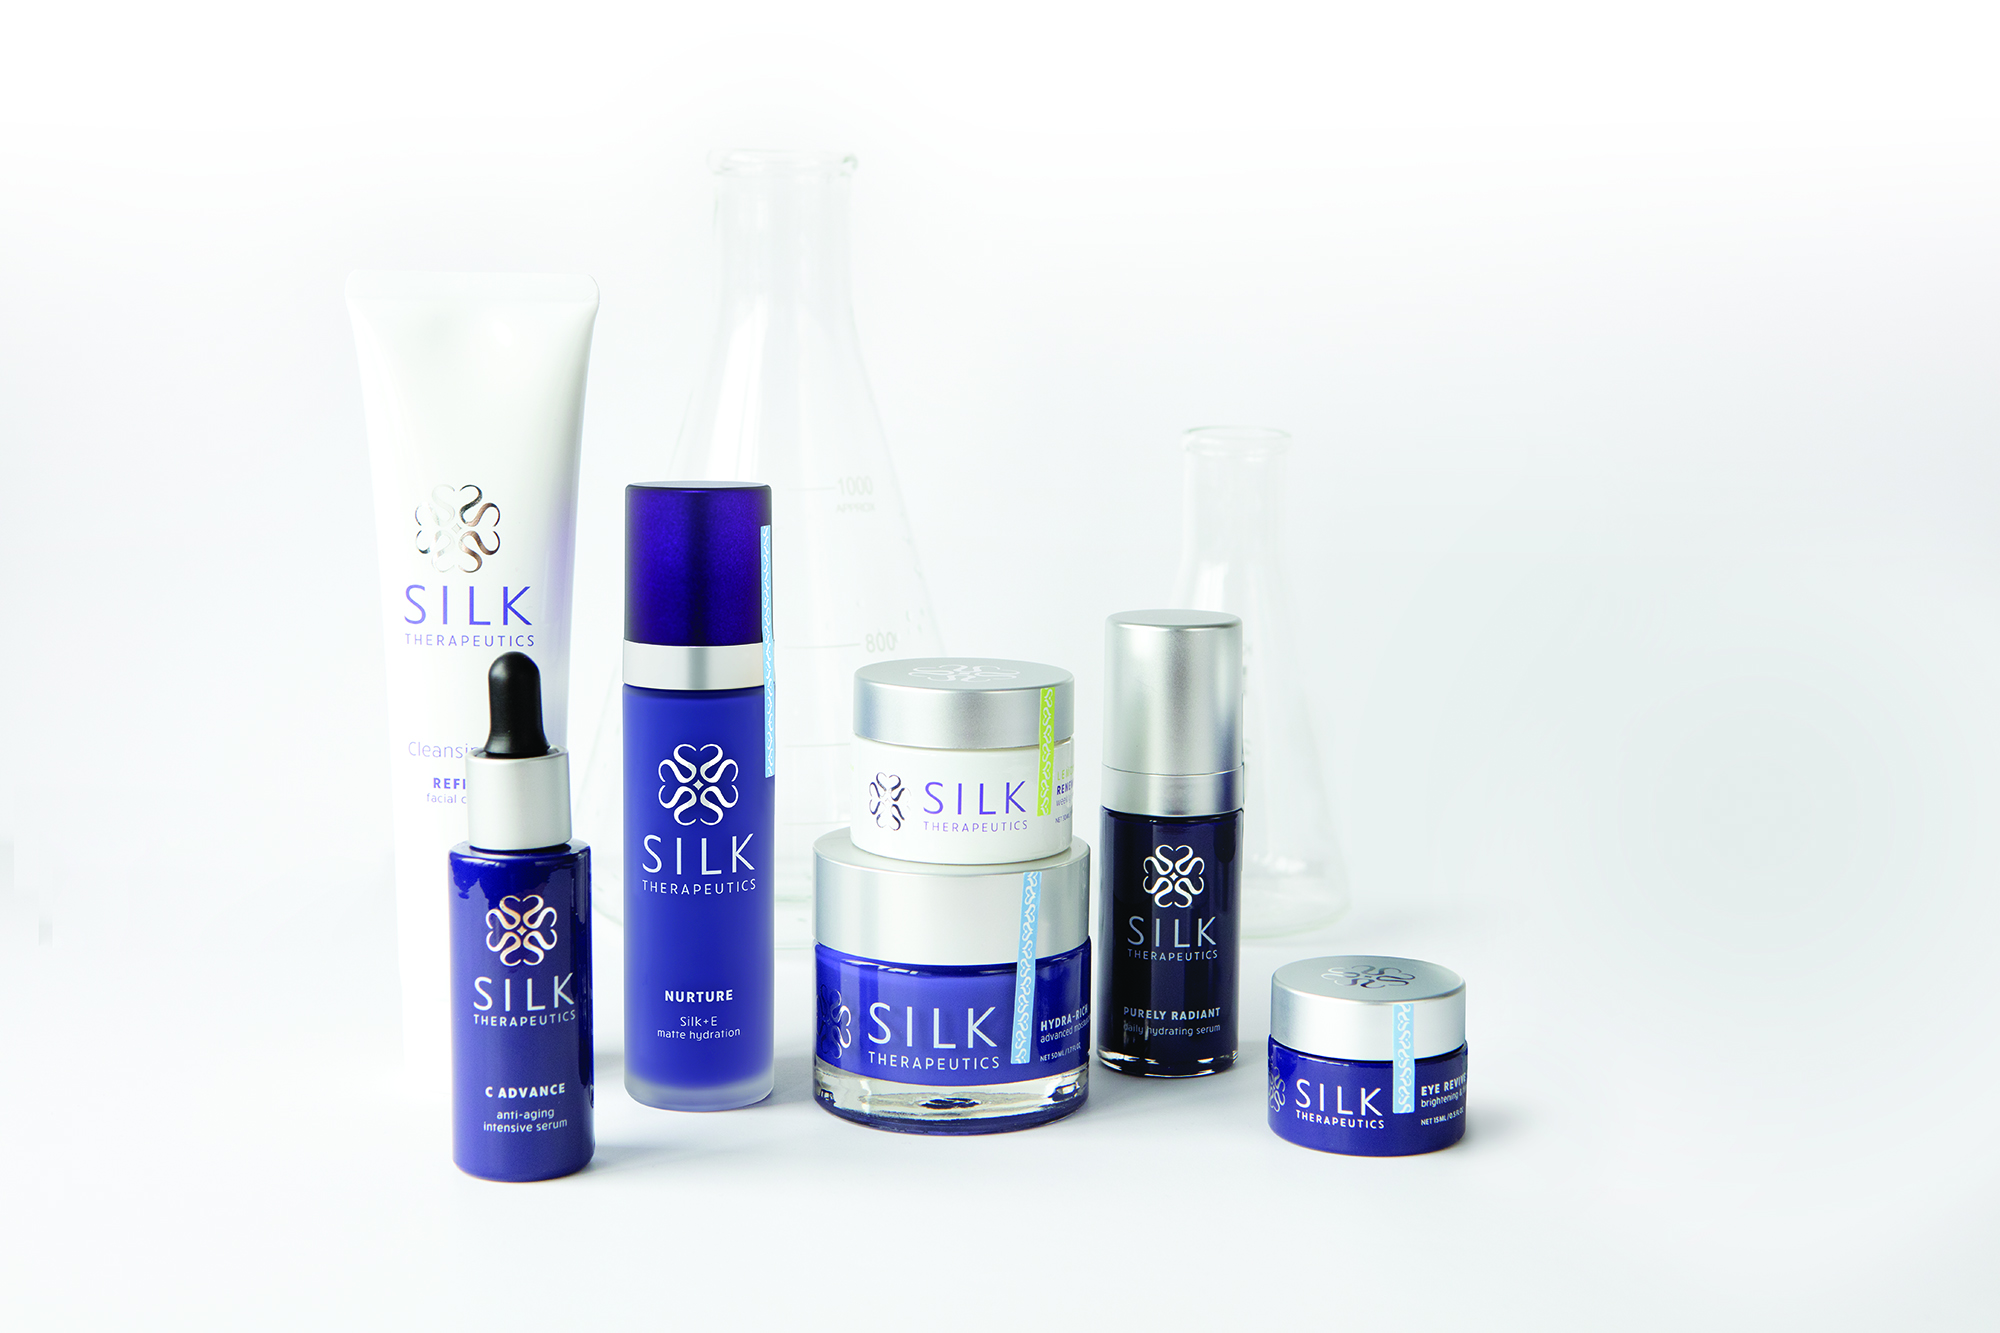 silk therapeutics shopify plus development